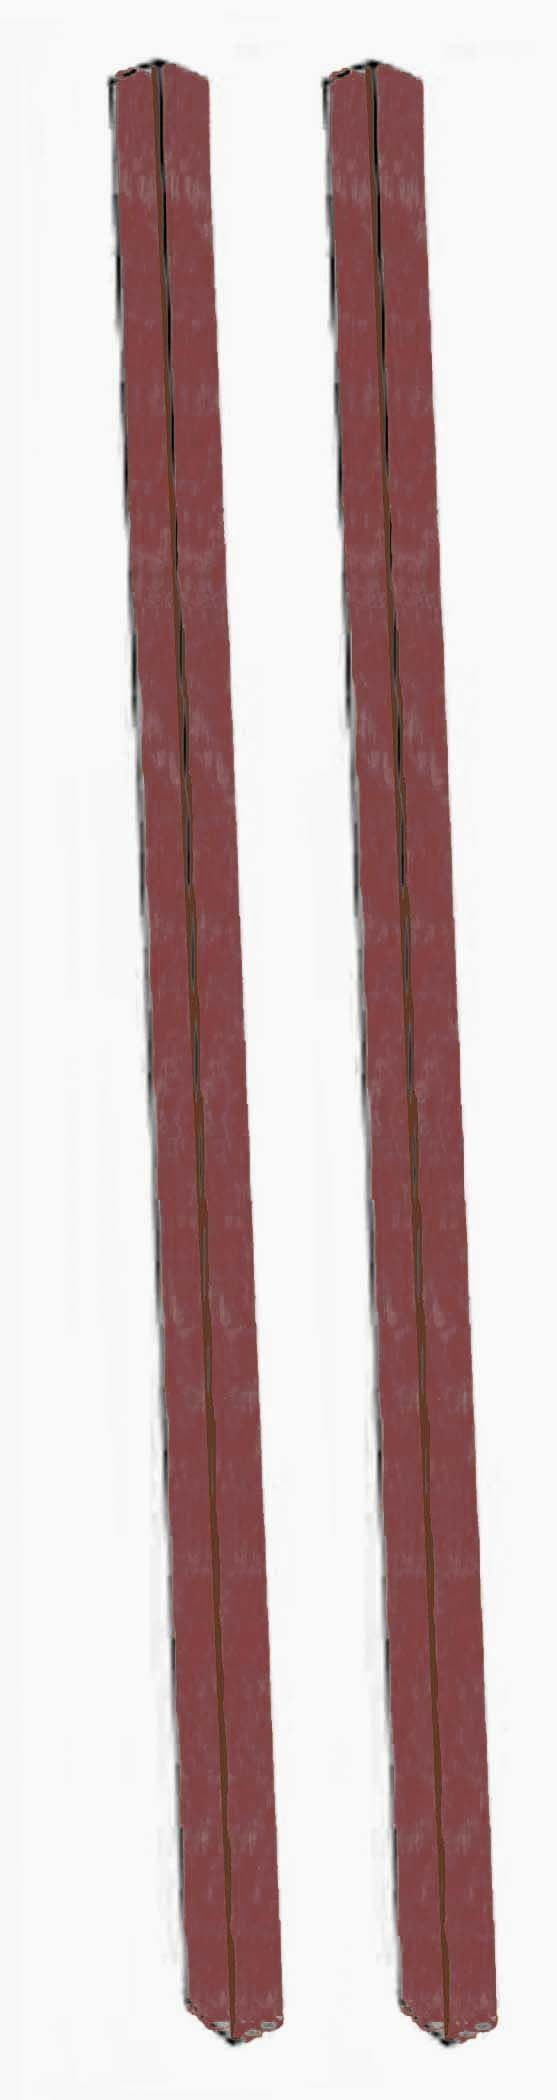 Aarco Products DPP-7 Rosewood Plastic Lumber Post Set